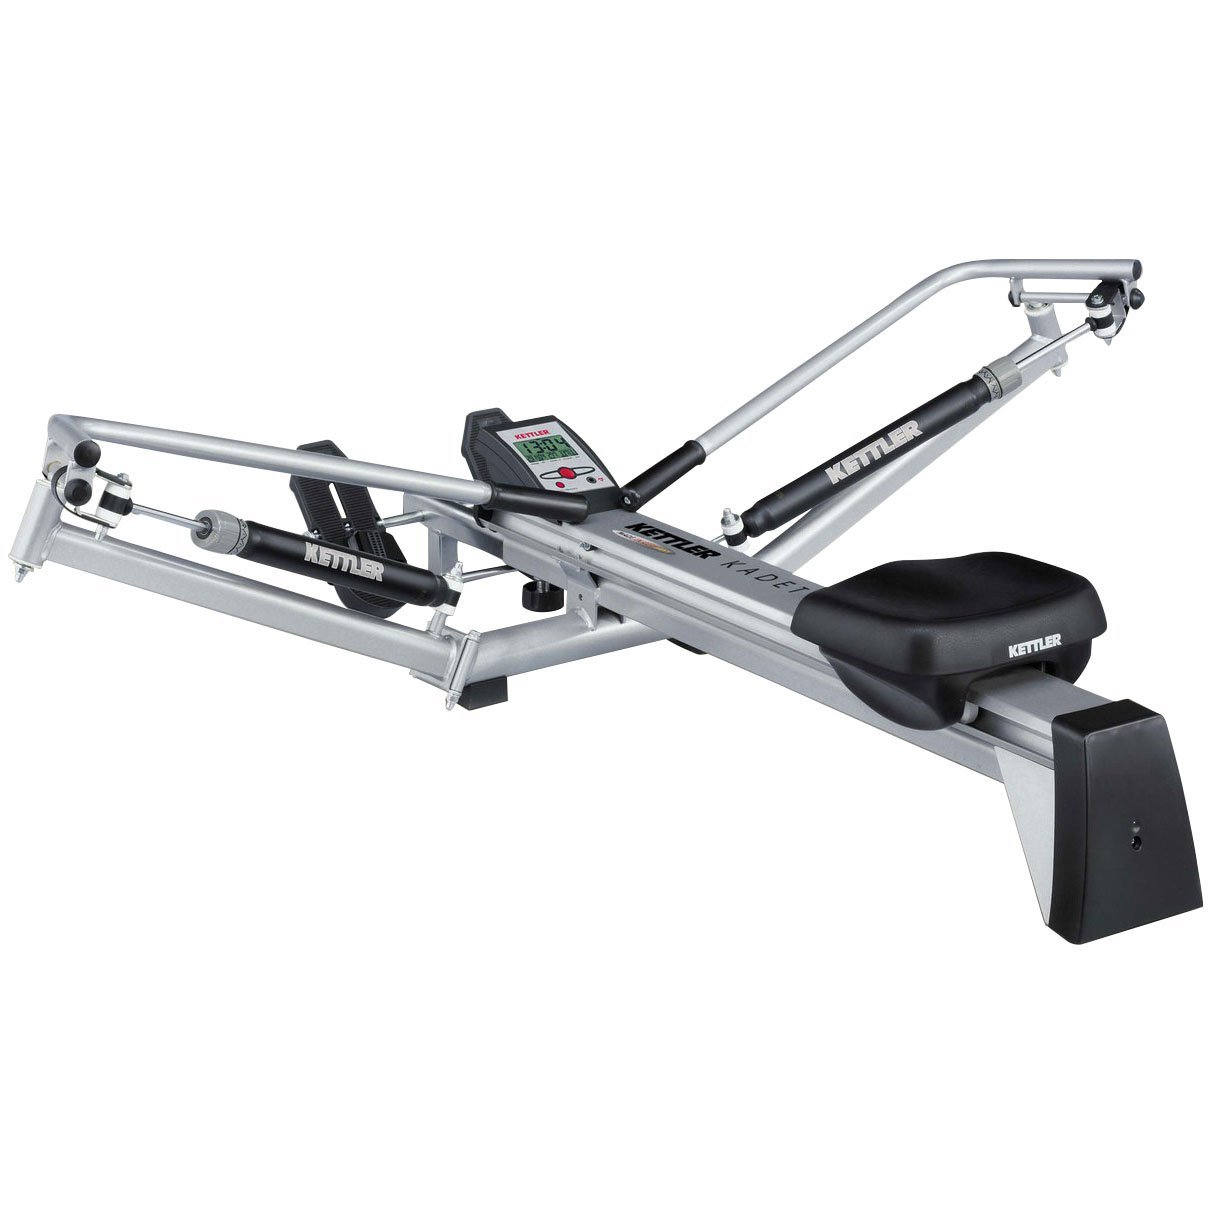 Kettler Home Exercise/Fitness Equipment: Kadett Outrigger Style Rower Rowing Machine